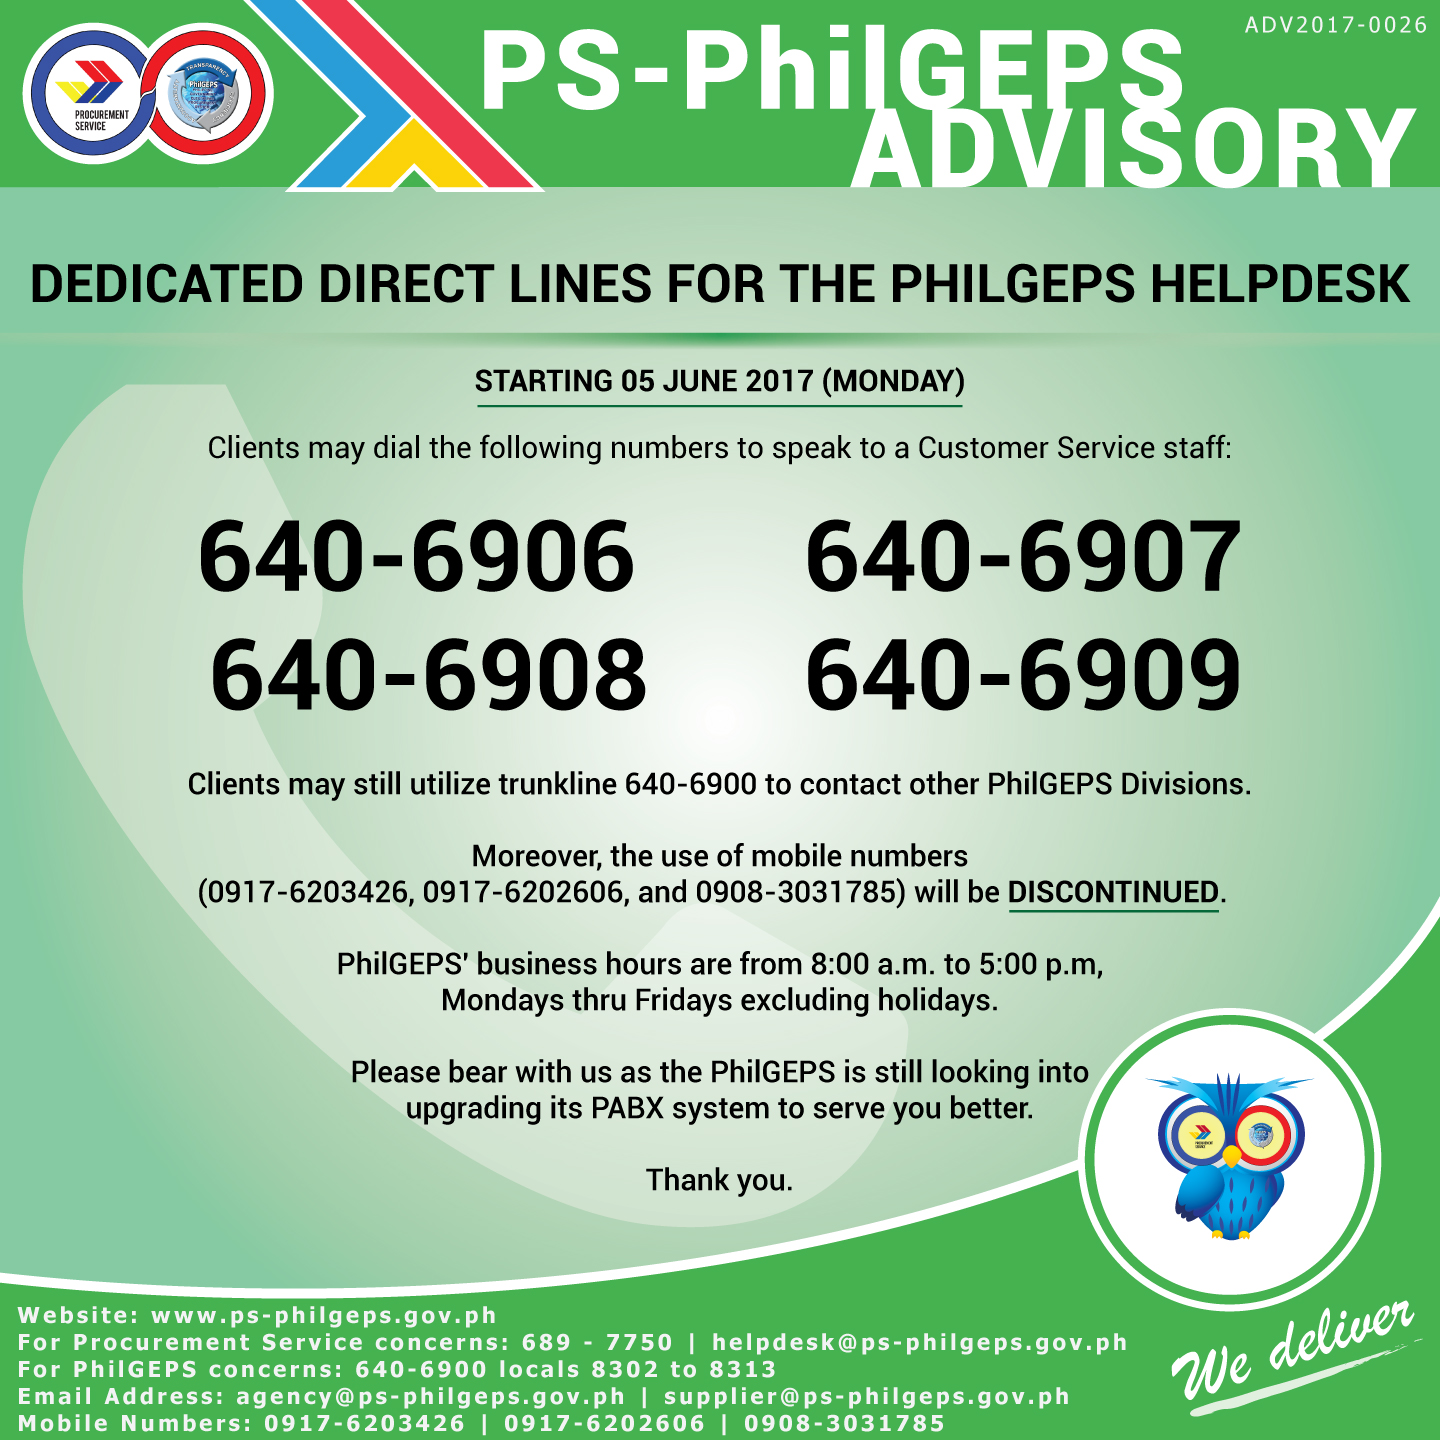 Dedicated Direct Lines For PhilGEPS Helpdesk